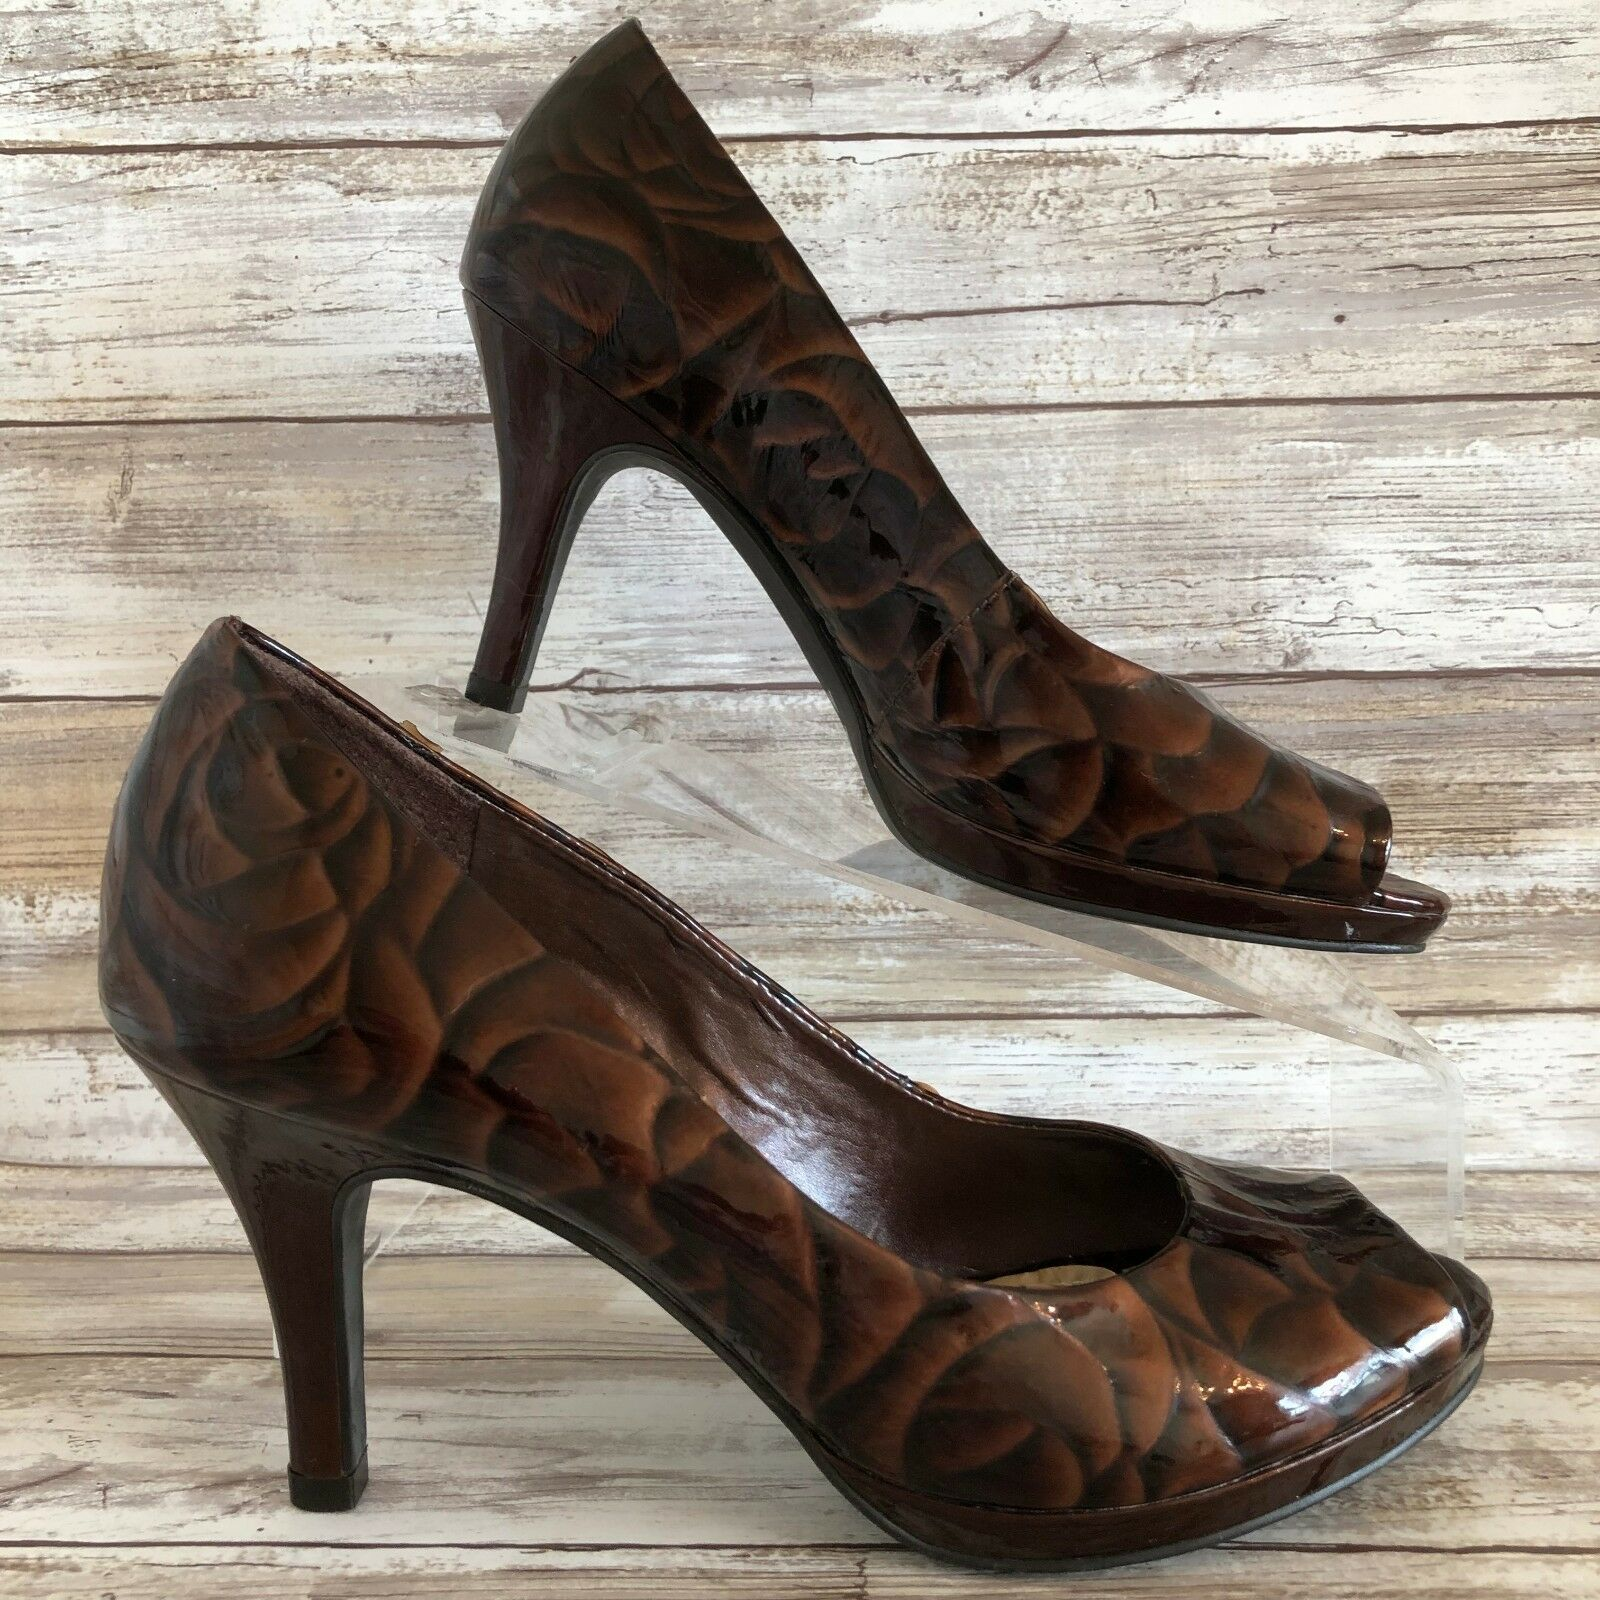 Alex Marie Womens Dress Work Pumps Brown Patent Leather Open Toe 8M